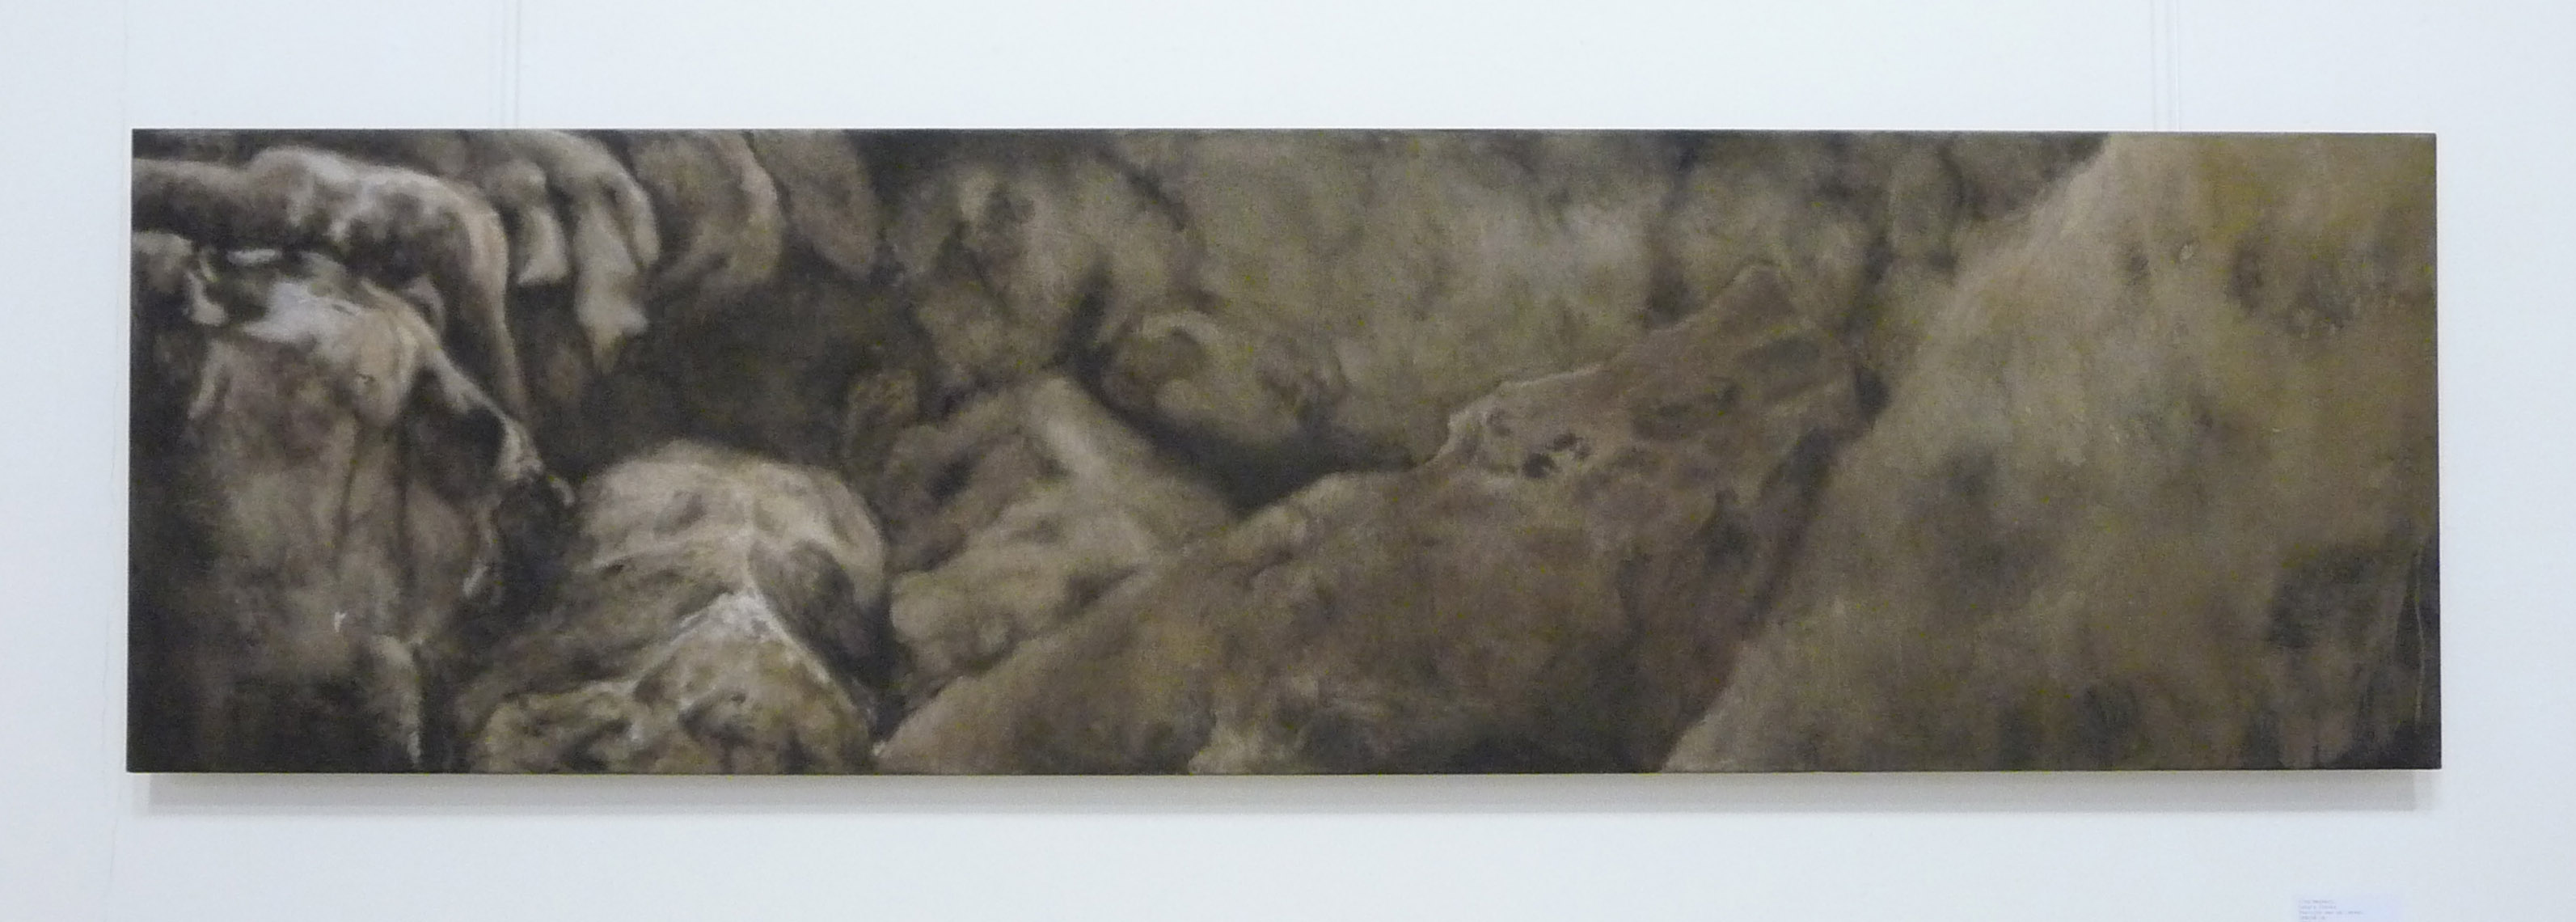 <p><strong>Sahara Stones</strong><br />Punic wax on canvas        50x180cm